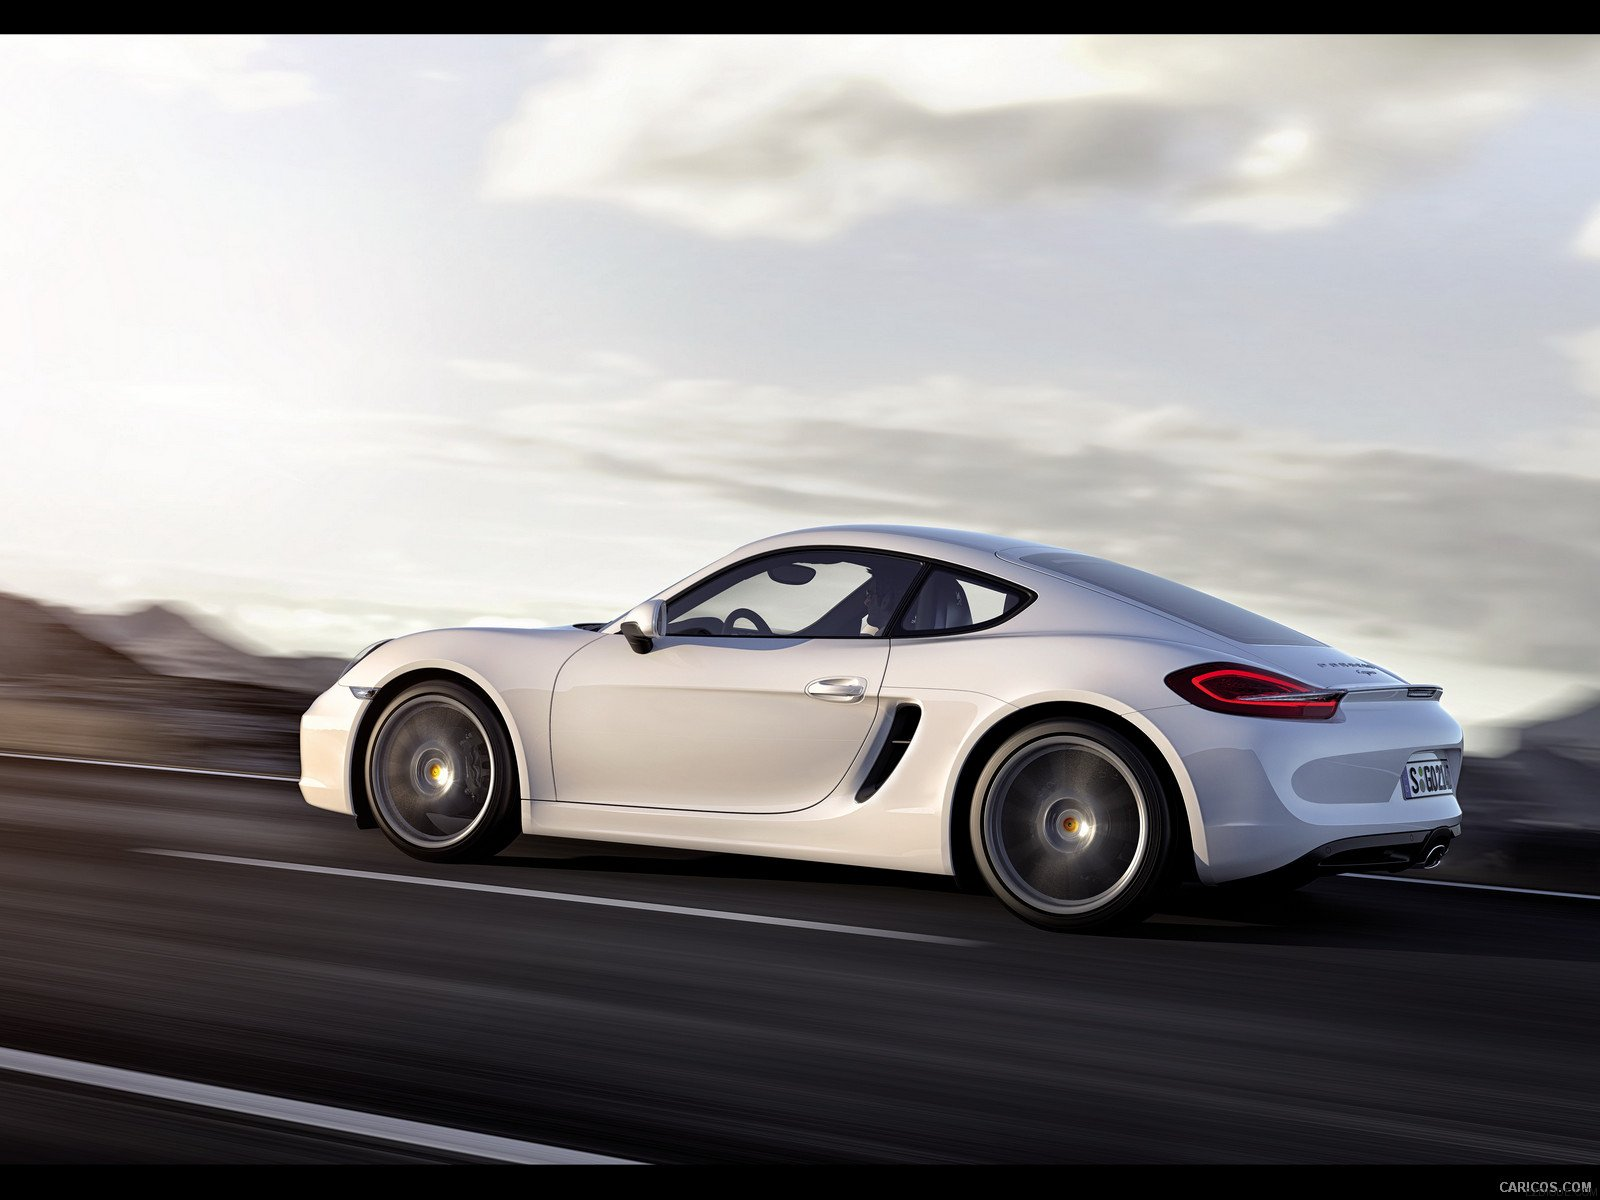 2014 porsche cayman s wallpaper 1600x1200 39339. Black Bedroom Furniture Sets. Home Design Ideas